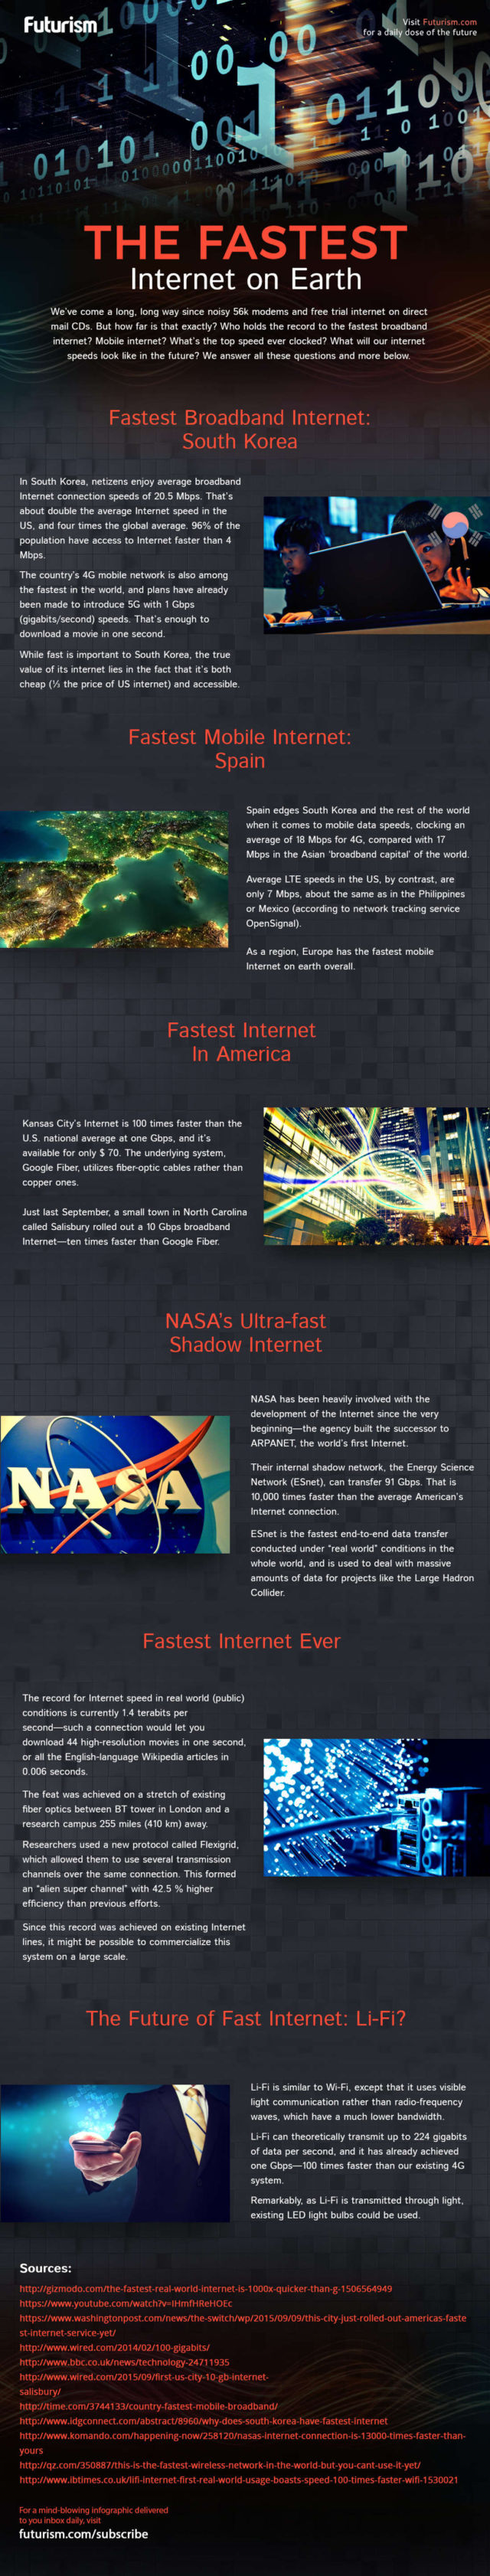 The Fastest Internet on Earth